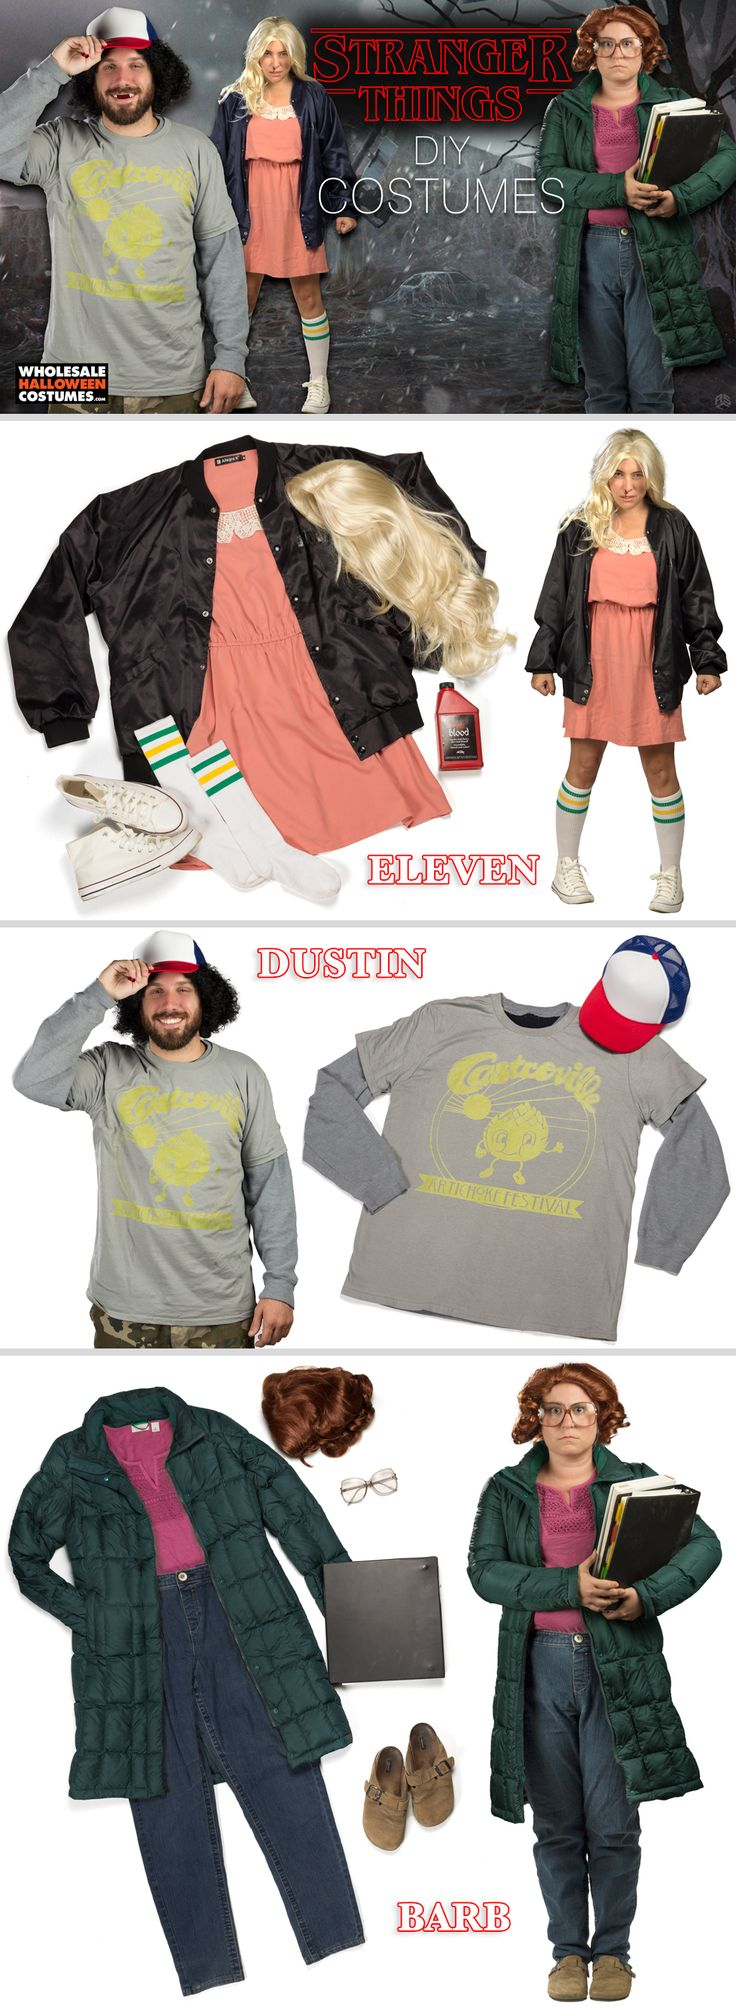 Make things stranger this Halloween with a DIY Stranger Things group costume!